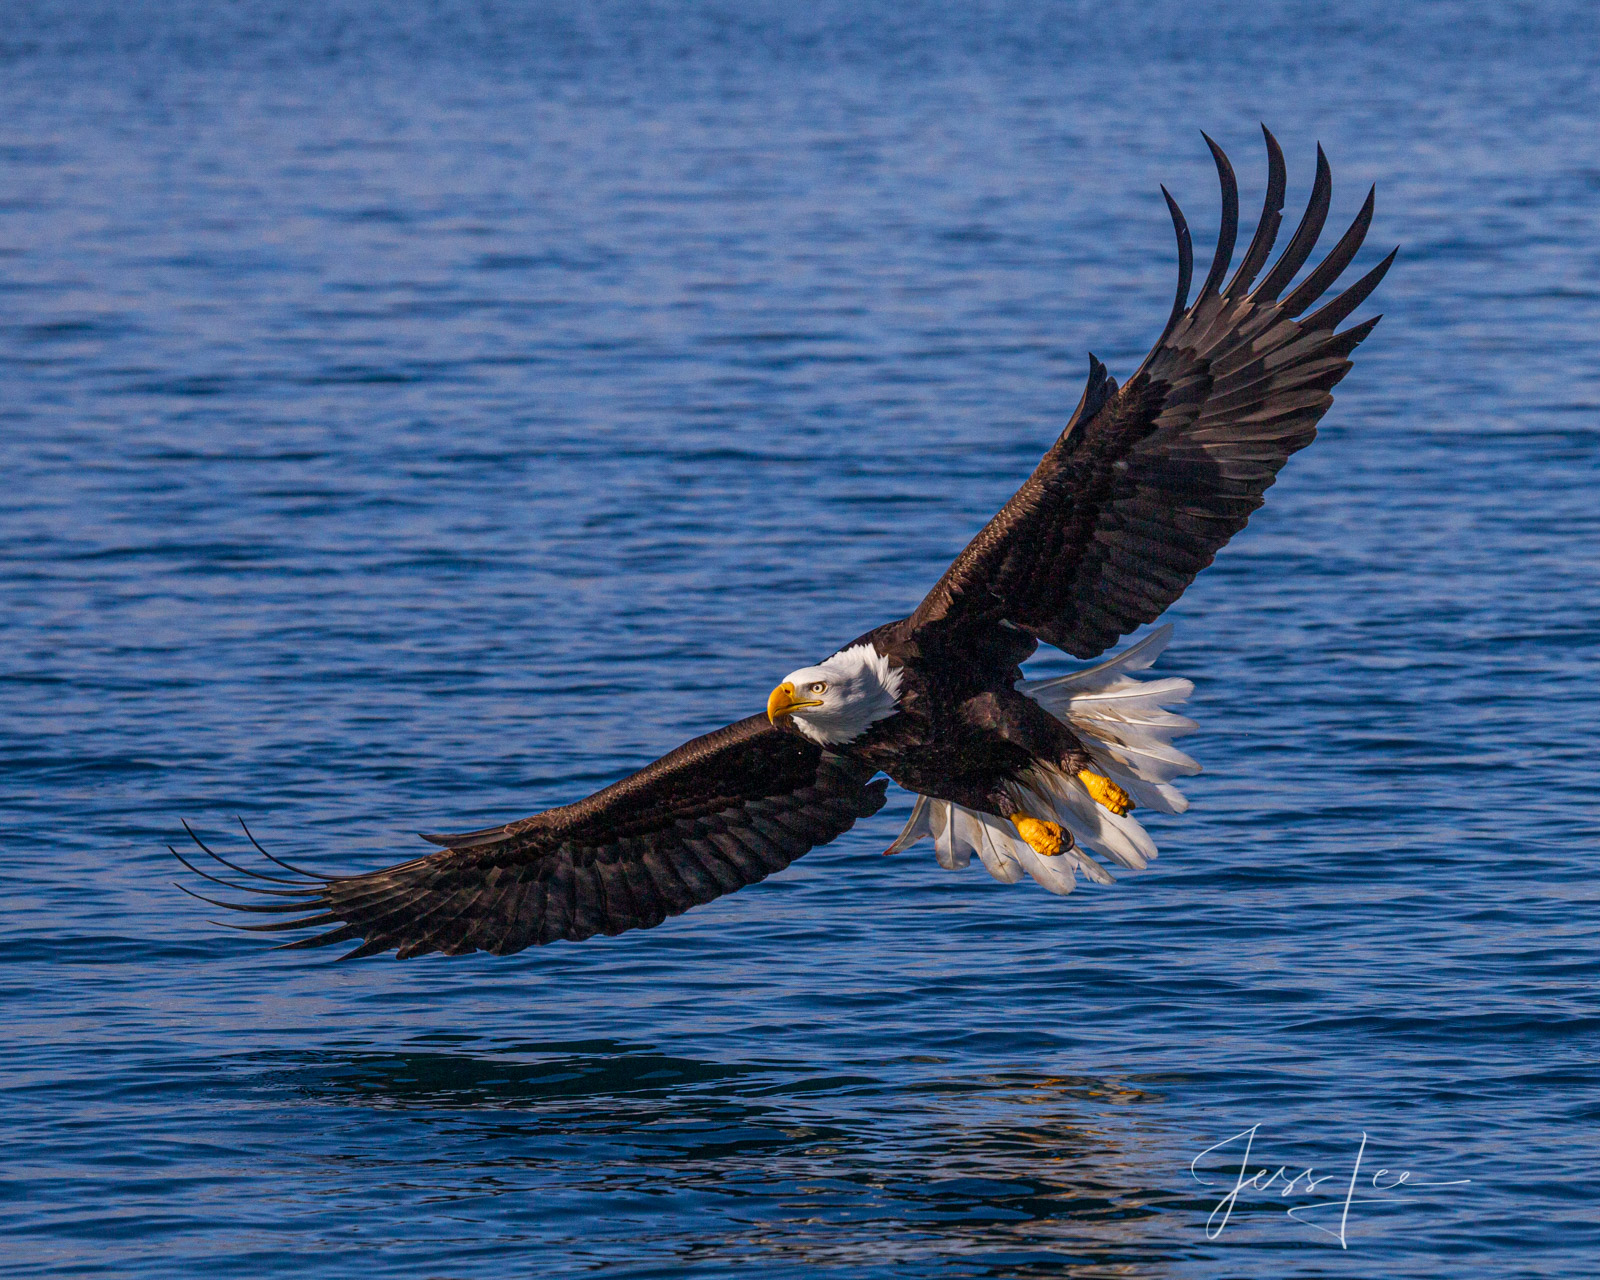 Bring home the power and beauty of the amazing fine art American Bald Eagle photograph Concentration  by Jess Lee from his Wildlife...